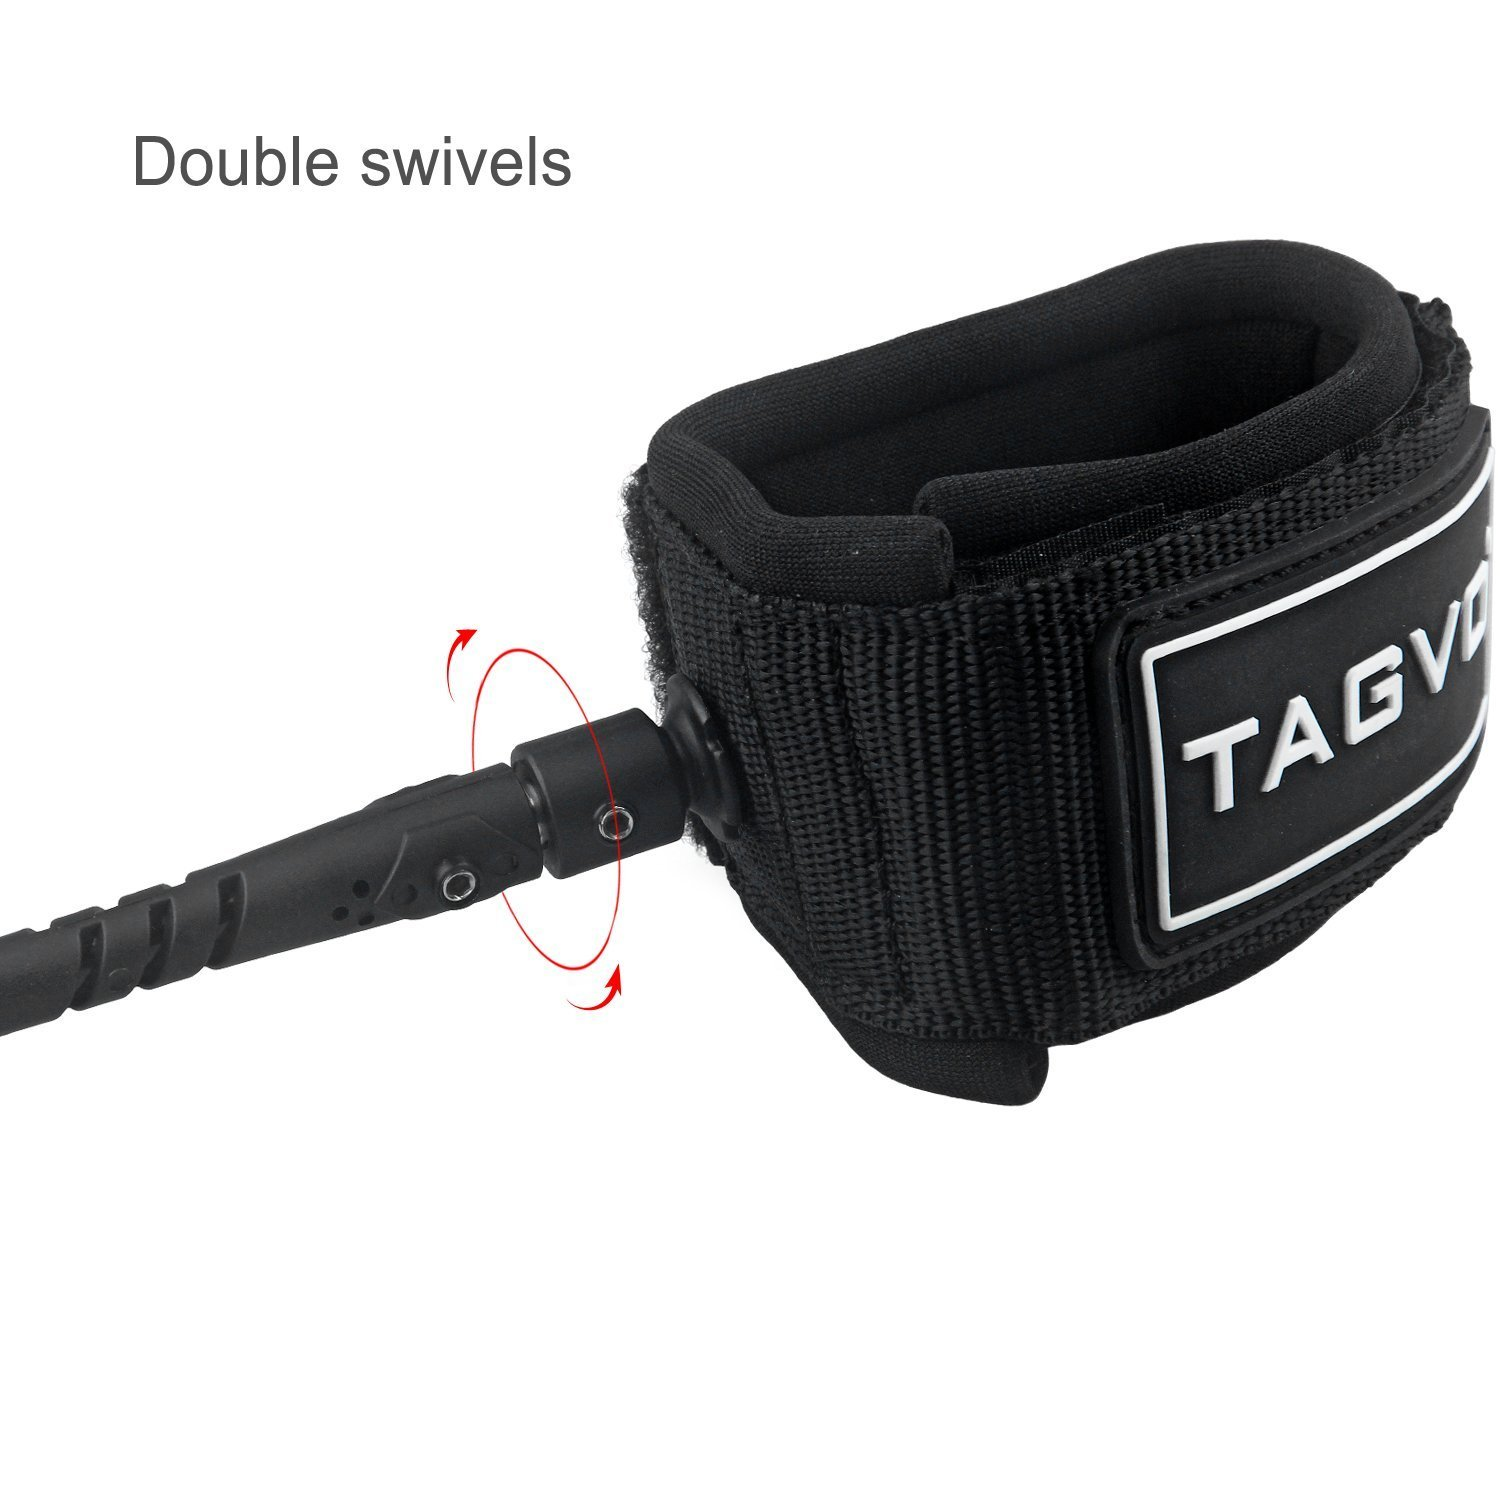 Comfortable Padded Neoprene Ankle Cuff Stand up Paddle Board Leash with Double Swivels Anti-rust Flexible Surfboard Leash Tagvo Sup Leash Coiled 10 Super Strong 7mm Cord with Waterproof Waist Pouch